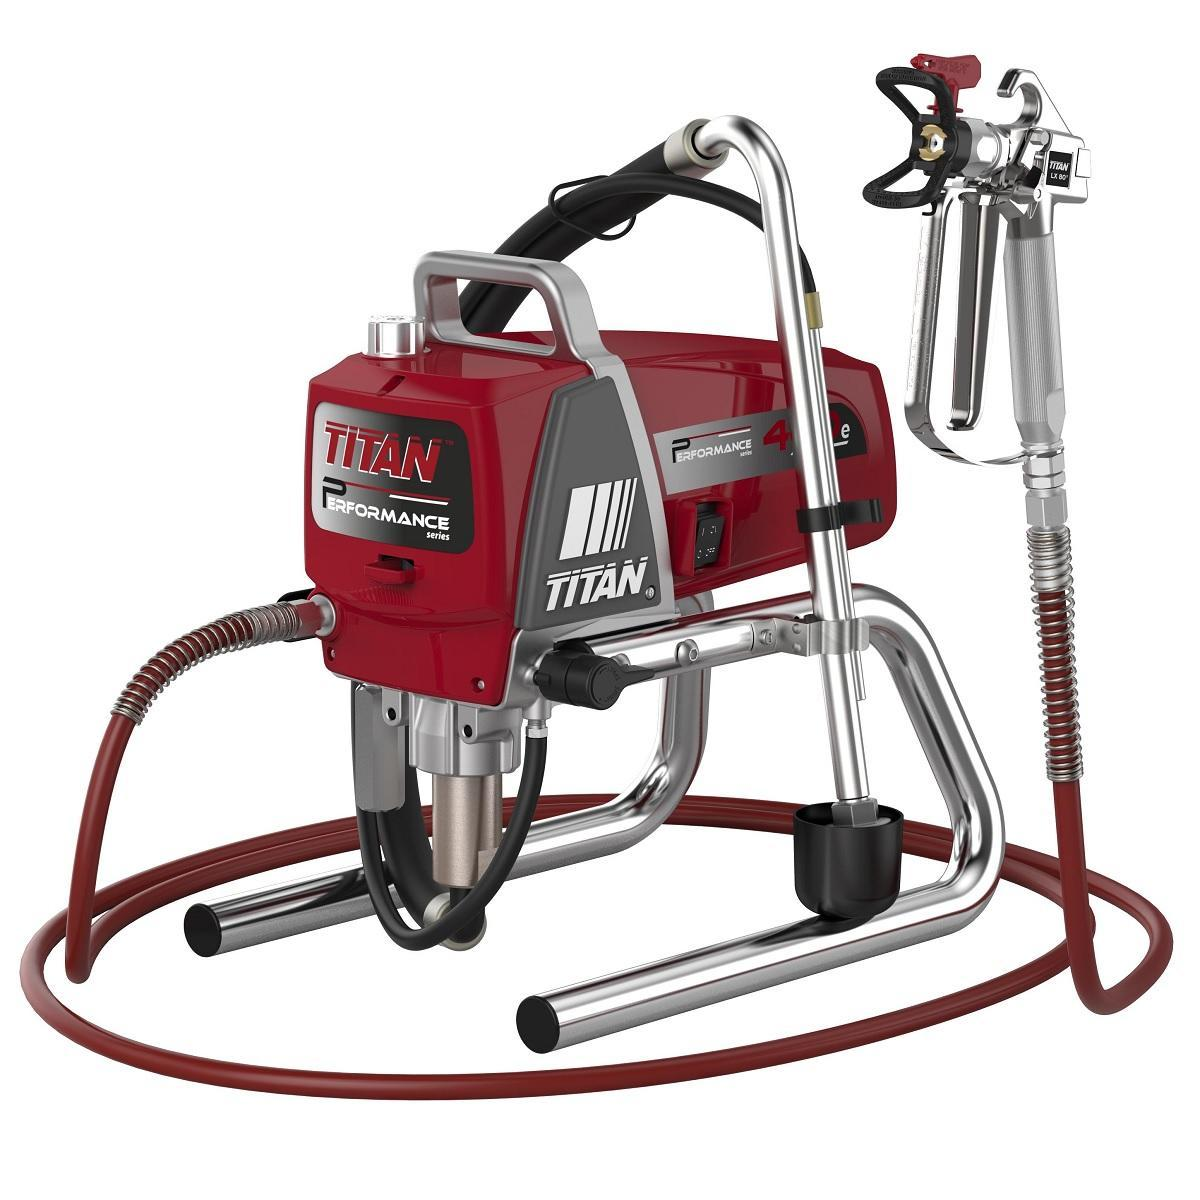 08. Airless Sprayers